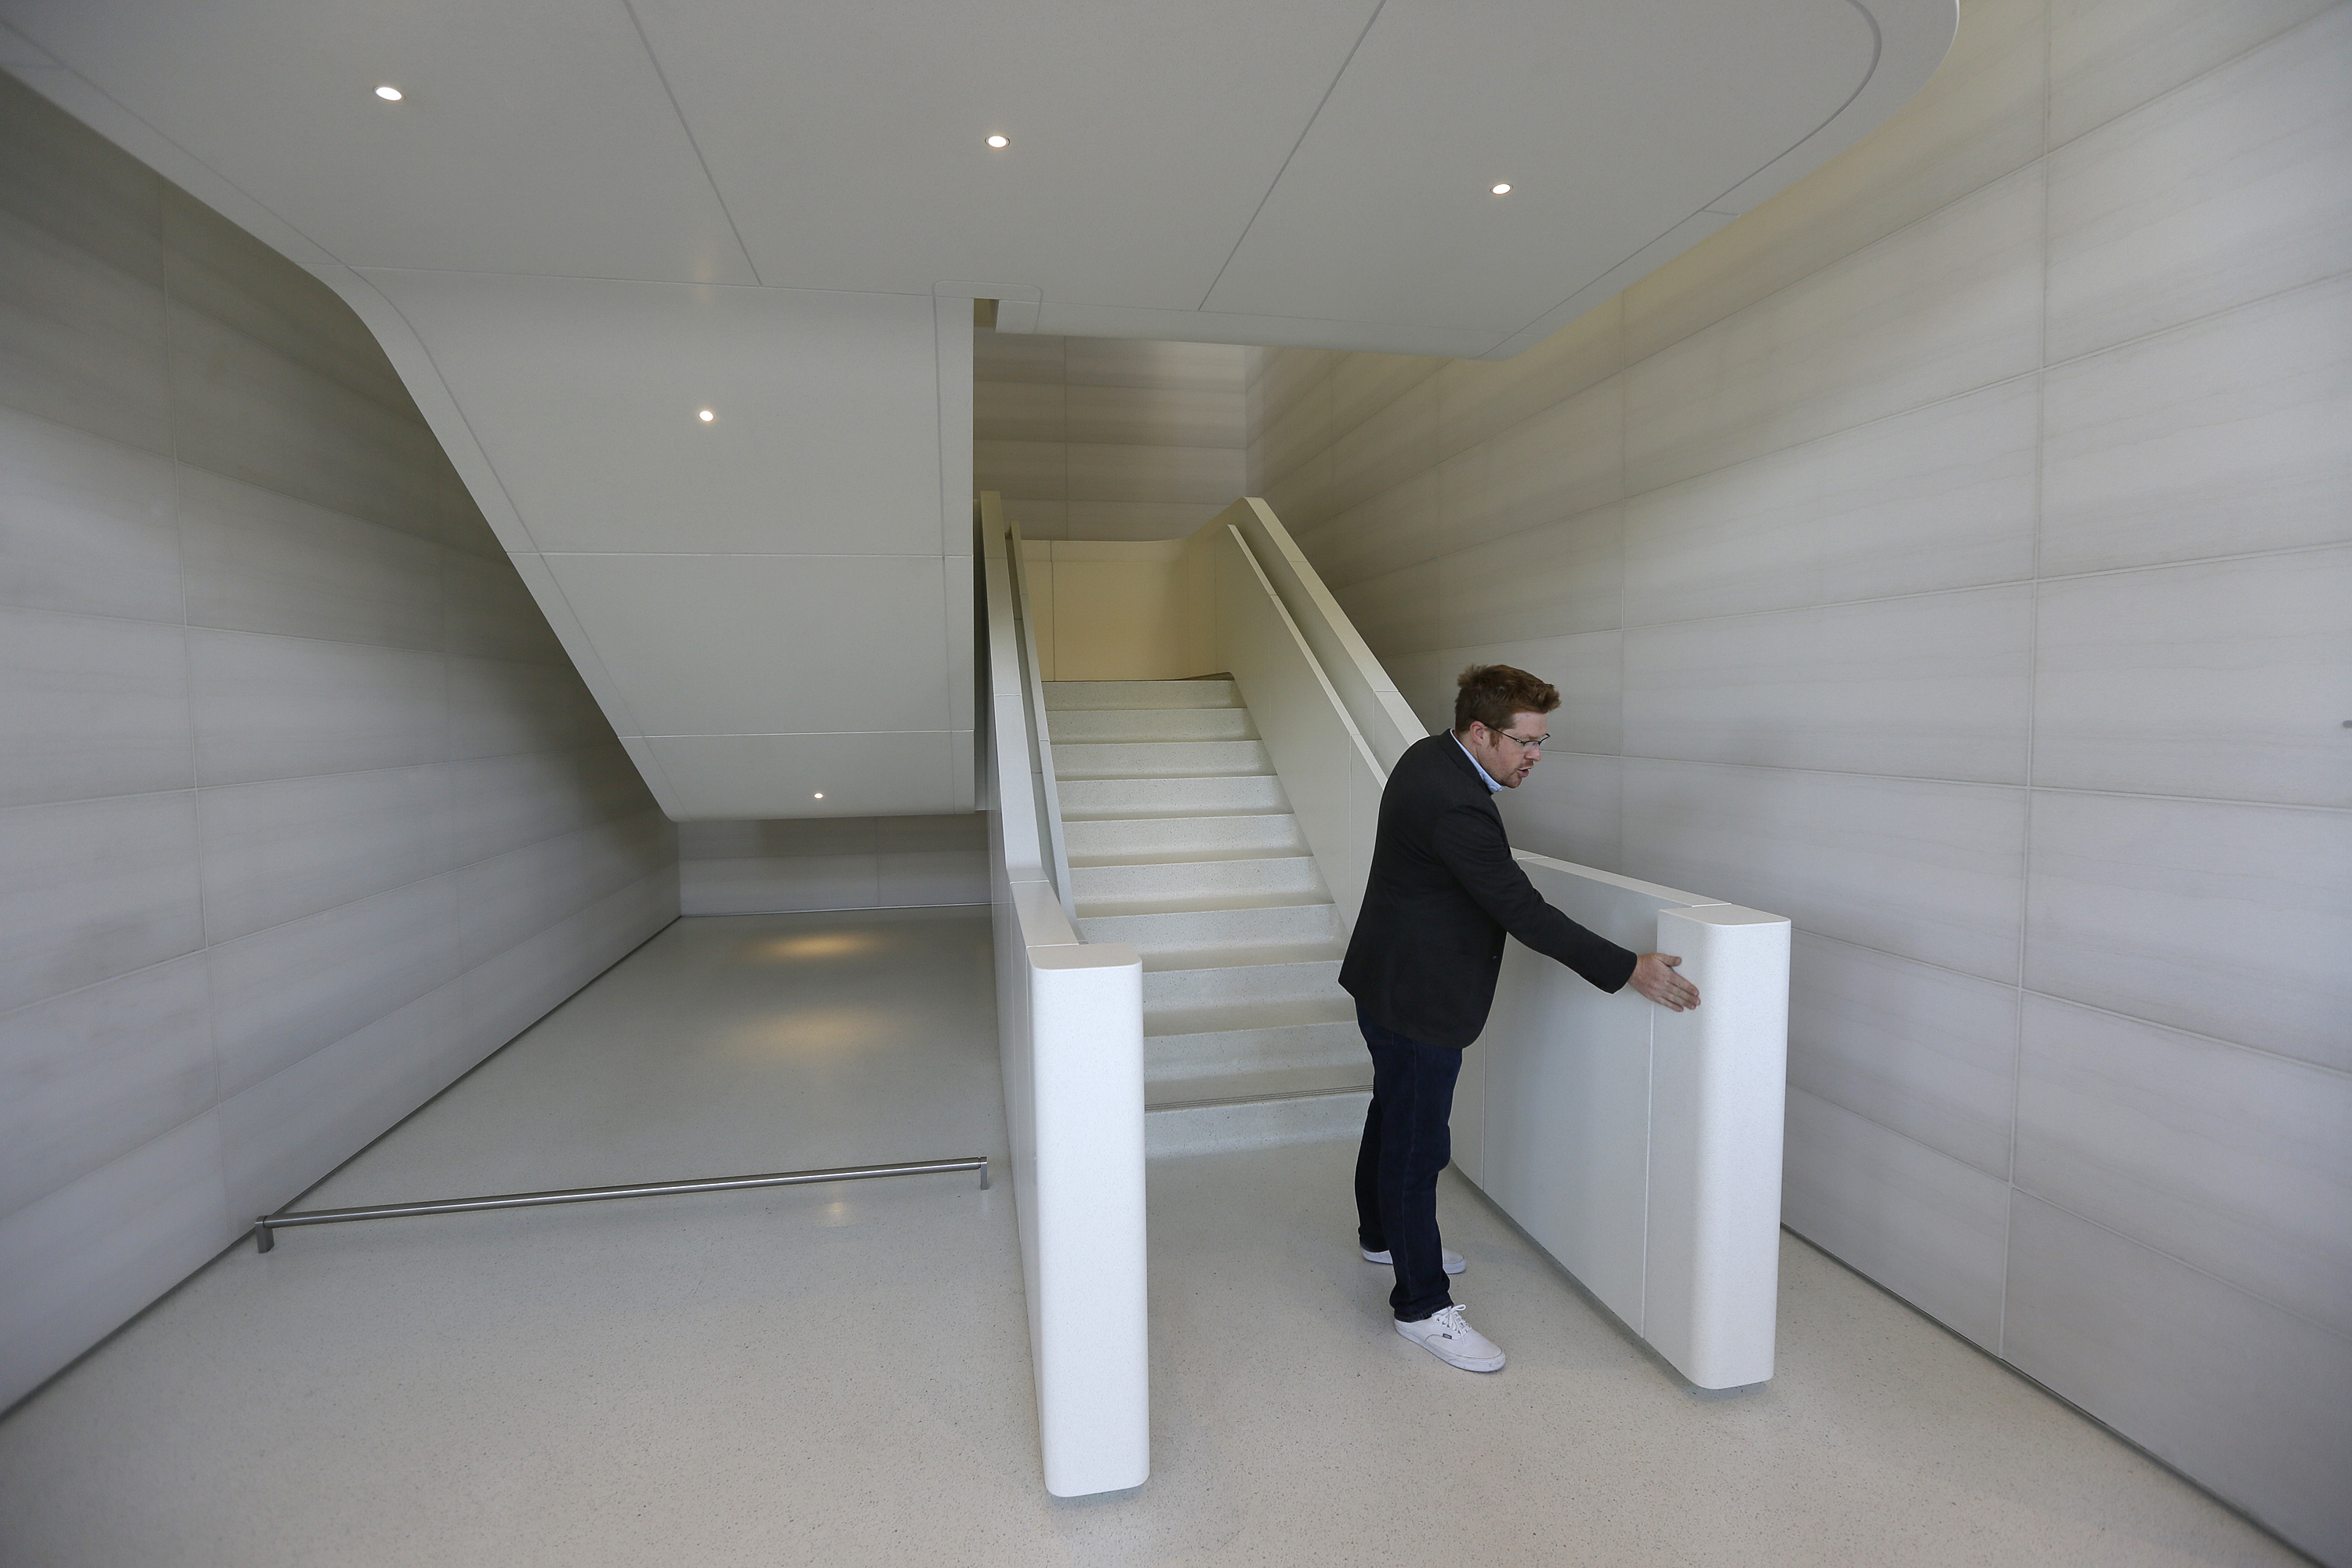 <div class='meta'><div class='origin-logo' data-origin='none'></div><span class='caption-text' data-credit='AP'>An Apple employee shows off a stairway during the grand opening of the Apple Park Visitor Center Friday, Nov. 17, 2017, in Cupertino, Calif. (AP Photo/Eric Risberg)</span></div>